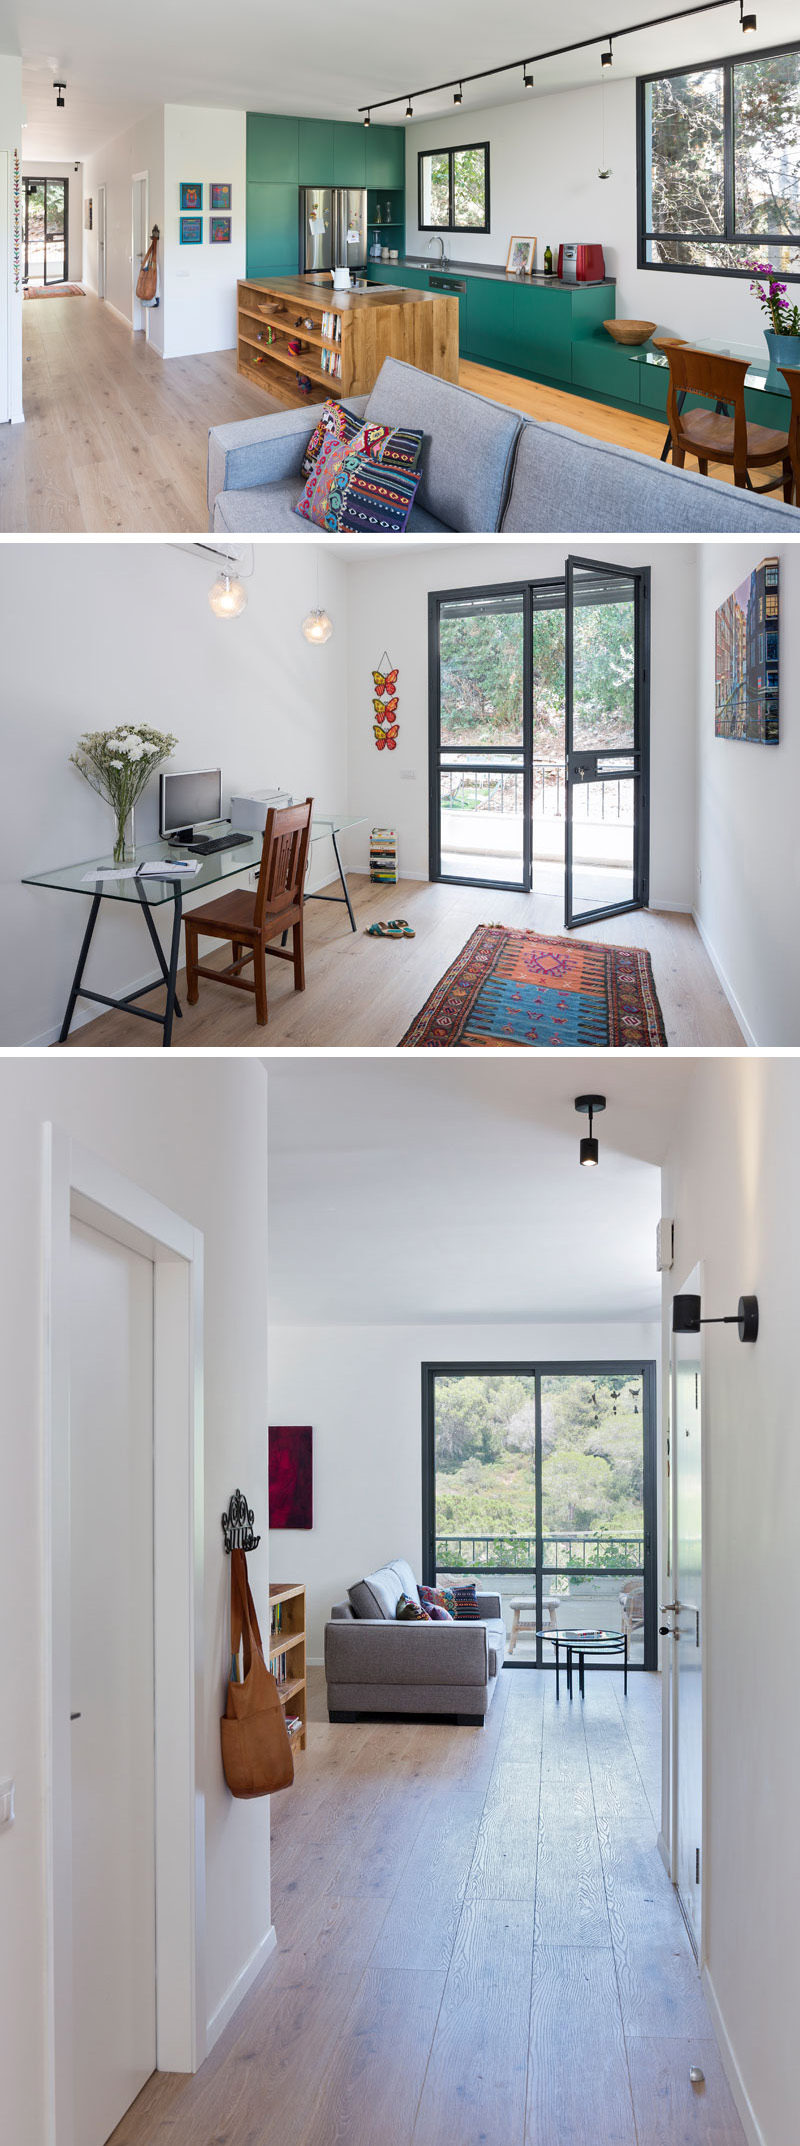 Upon entering this small and modern apartment, the wide hallway allows for a small home office space by the black framed, glass front door. Walking down the hallway a balcony door is visible in the living area, leading to more outside space.